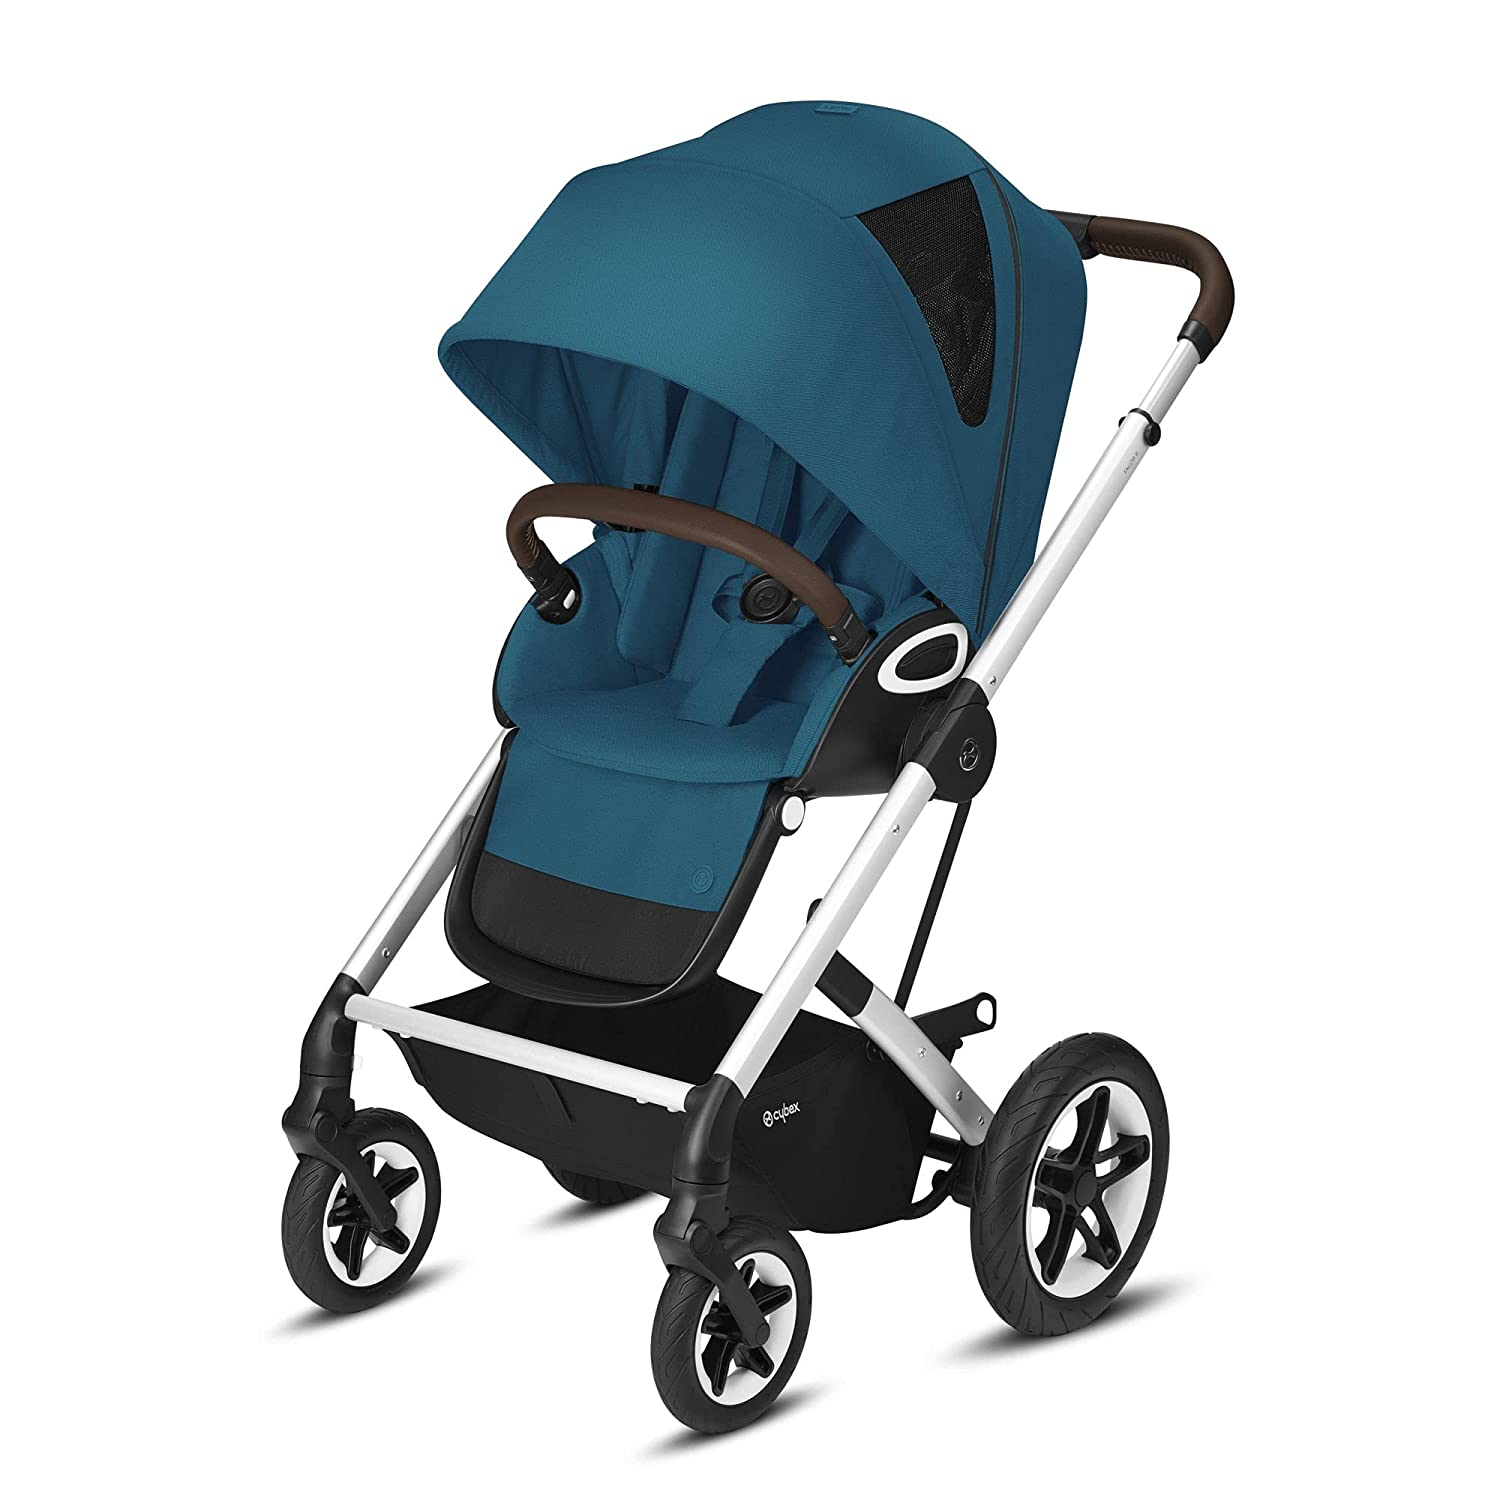 Cybex Talos S Lux Stroller, AllTerrain Wheels, FrontFacing or ParentFacing Seat Positions, OneHand Fold, Multiposition Recline, River Blue